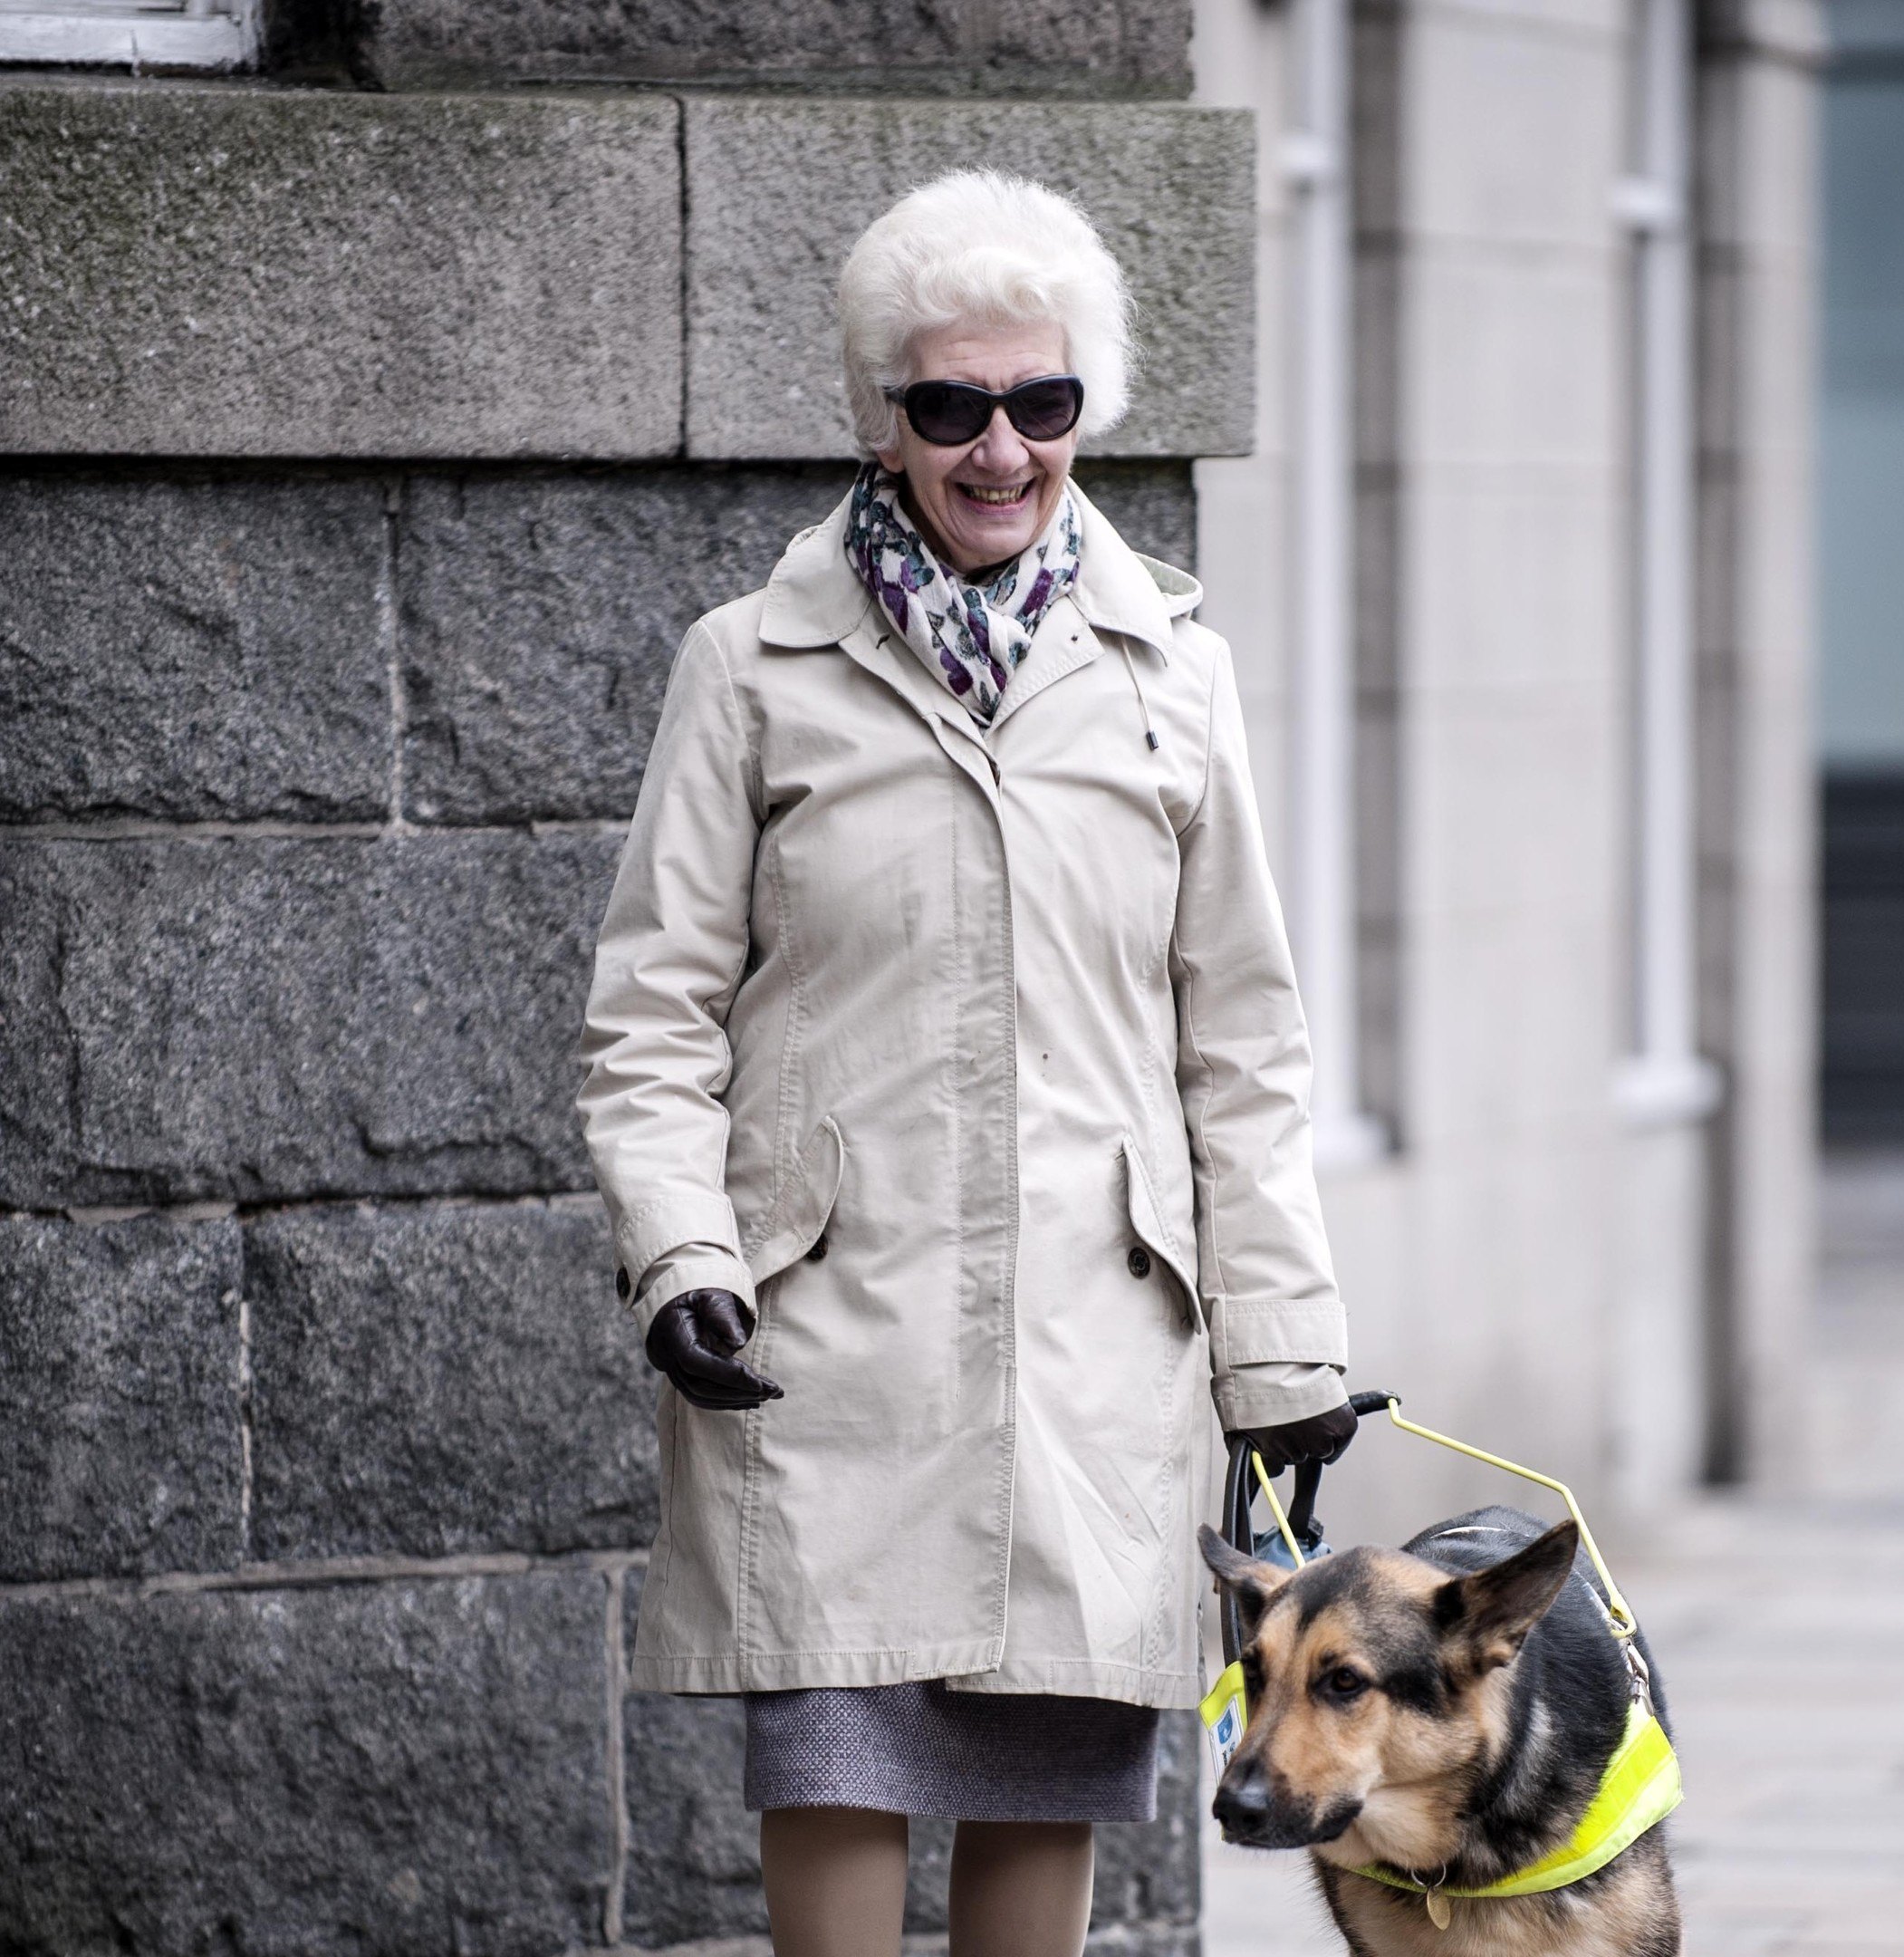 Picture by Christian Cooksey/CookseyPix.com on behalf of Guide Dogs.  Guide Dogs Annual Awards. Mary Rasmussen from Aberdeen, Scotland and her Guide Dog Nelson.